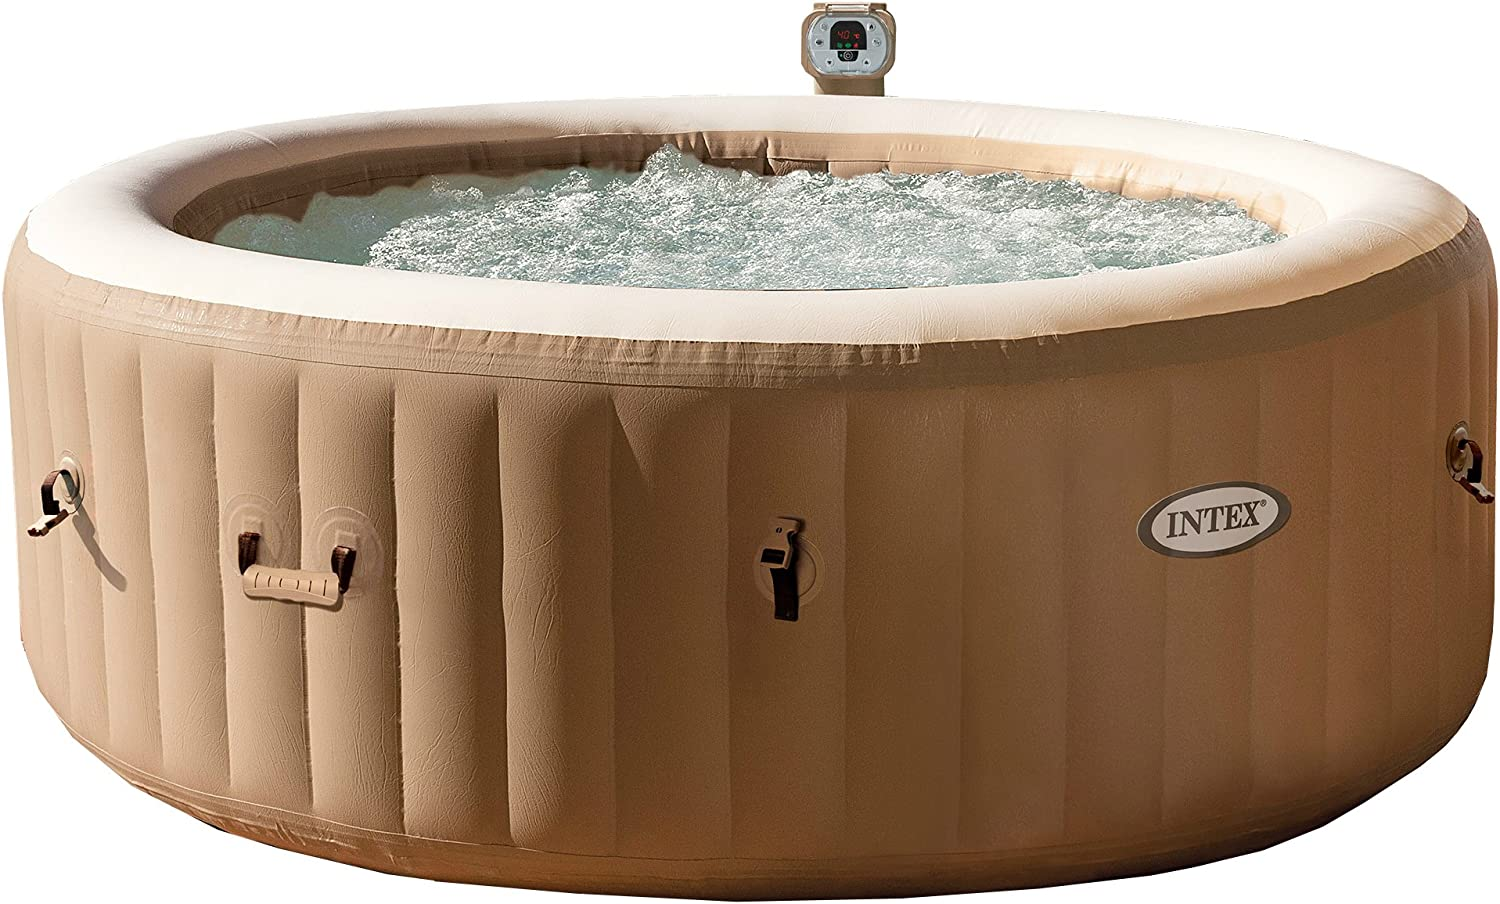 Top Rated Inflatable Hot Tub